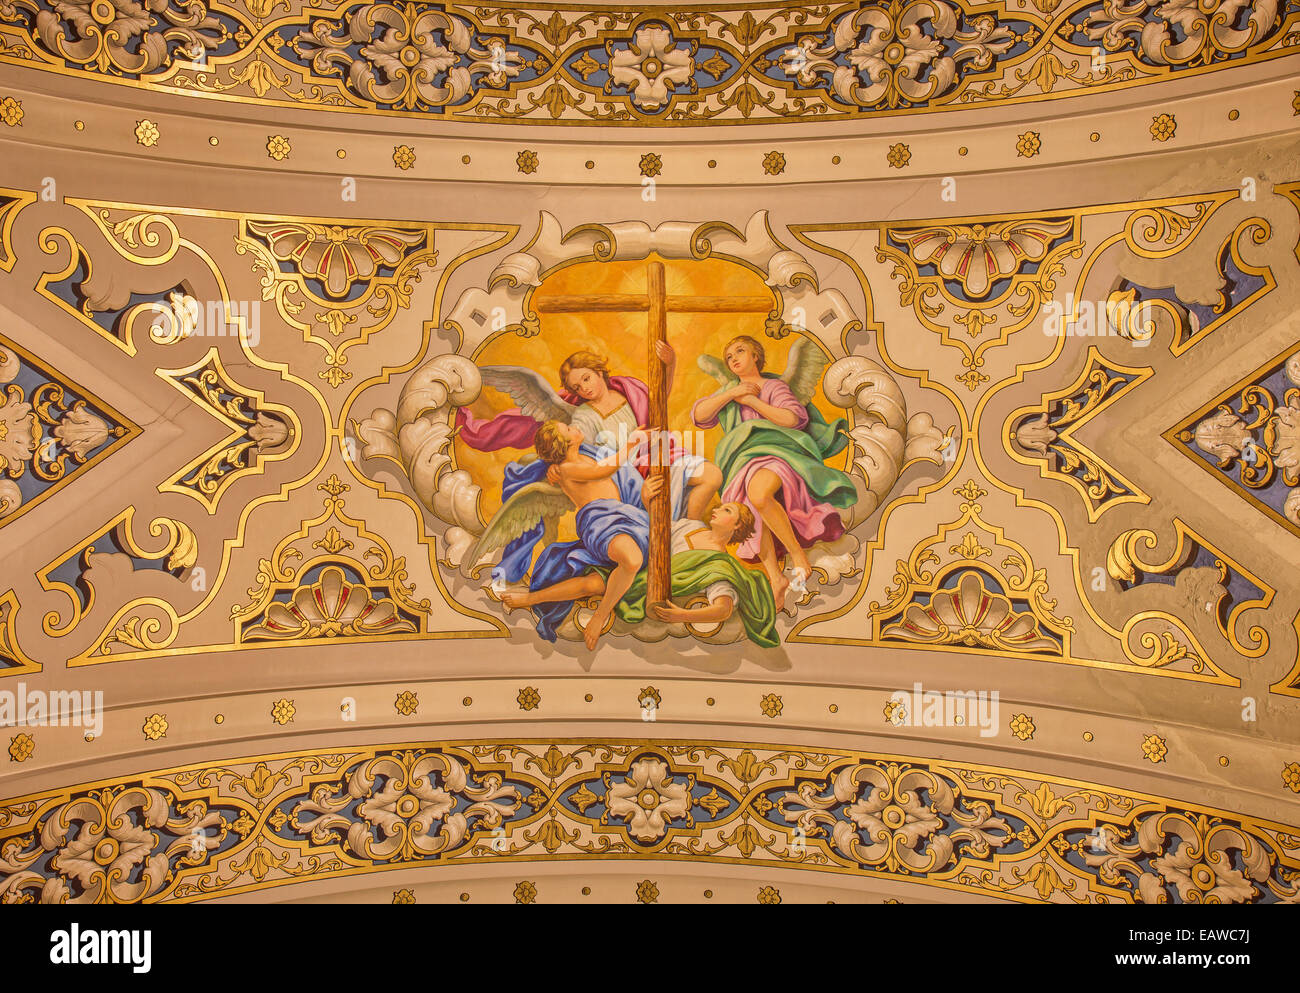 SEVILLE, SPAIN - OCTOBER 29, 2014: The fresco angels with the cross on the ceiling in church Basilica de la Macarena - Stock Image